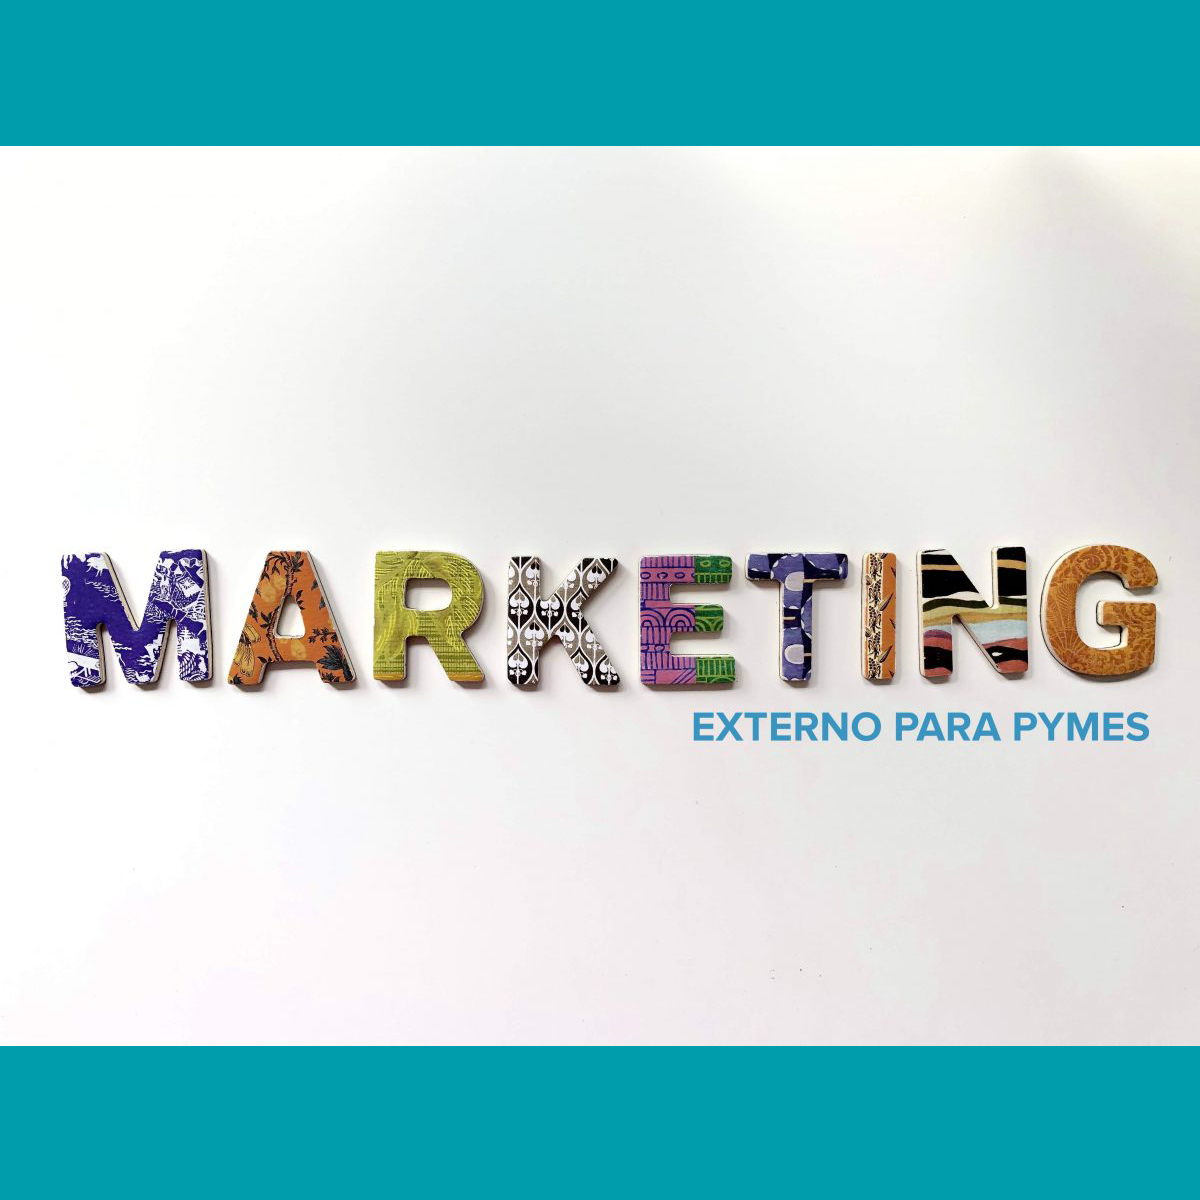 marketing externo para pymes